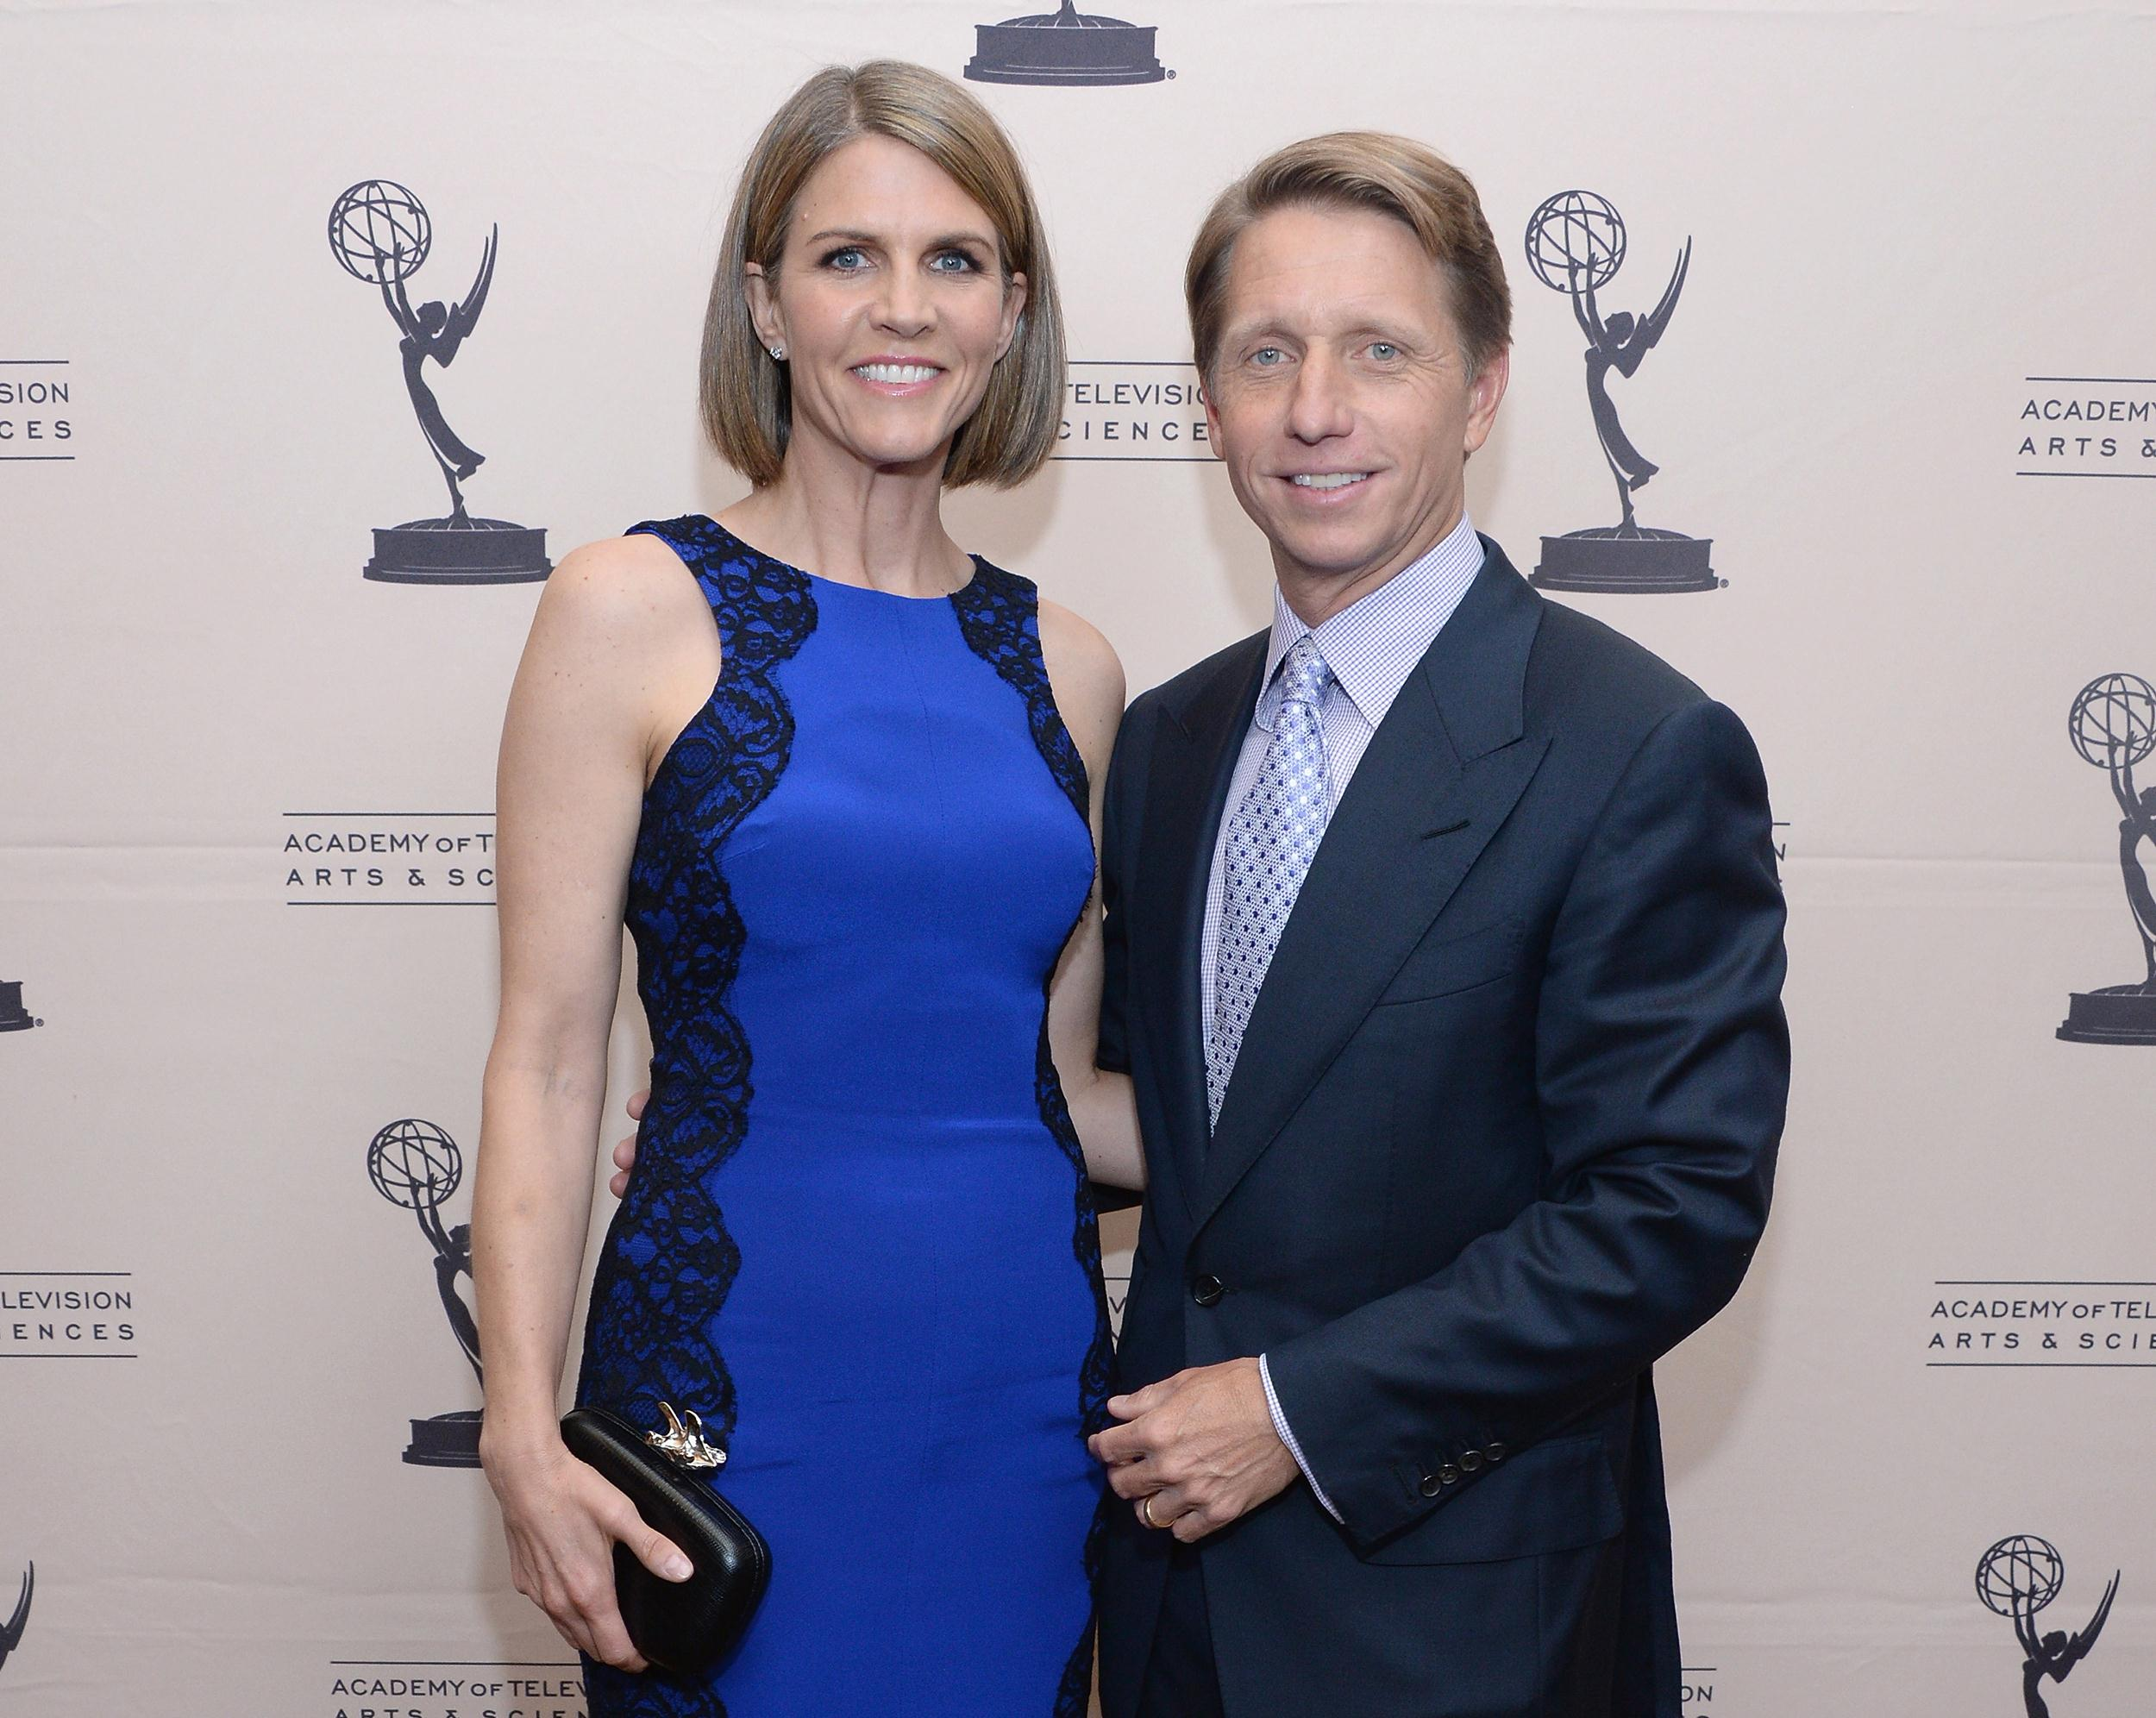 Image: Colleen Bell and and her husband Bradley Bell